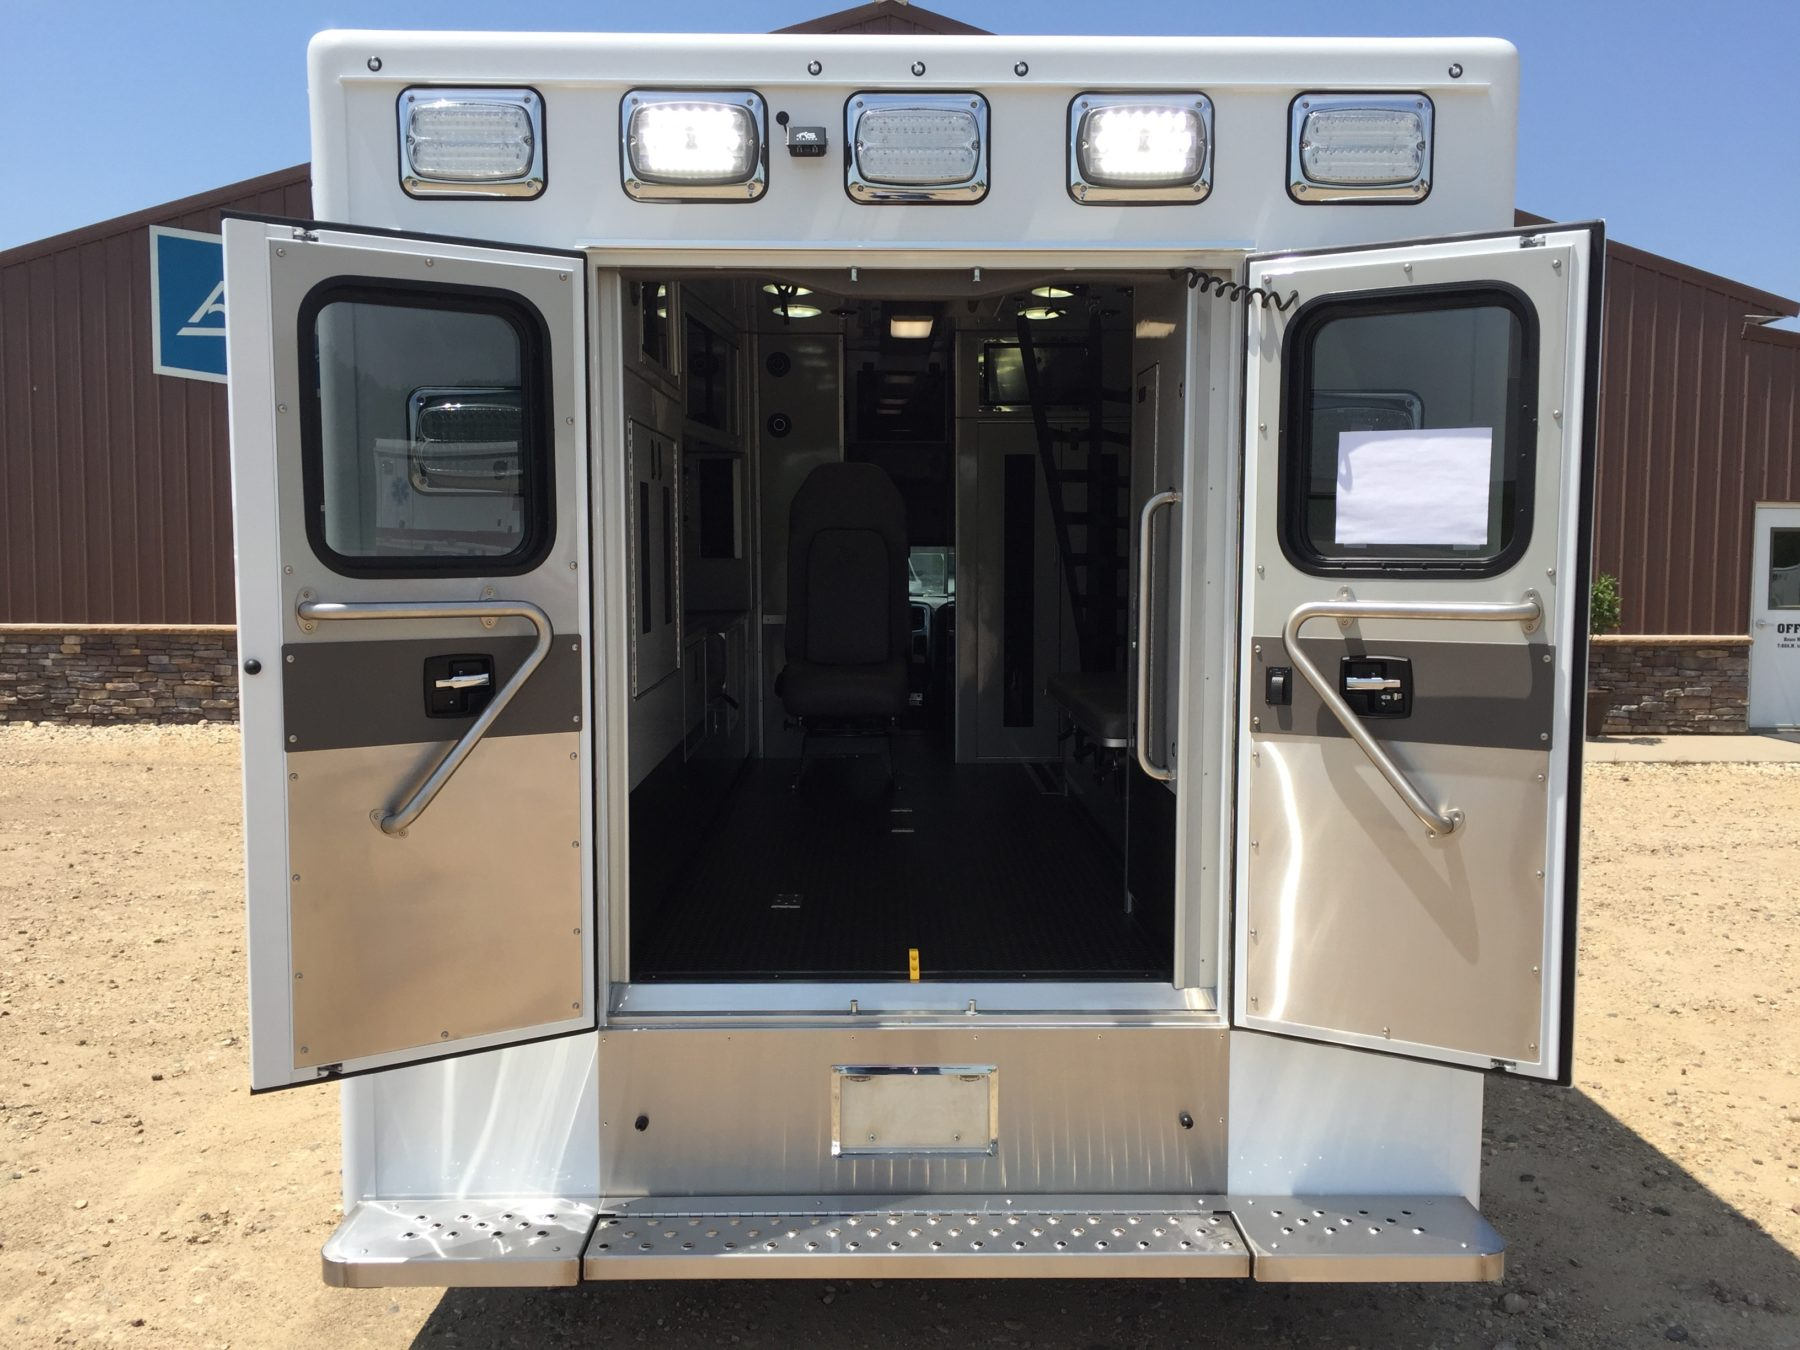 2017 Ram 4500 4x4 Heavy Duty Ambulance For Sale – Picture 9